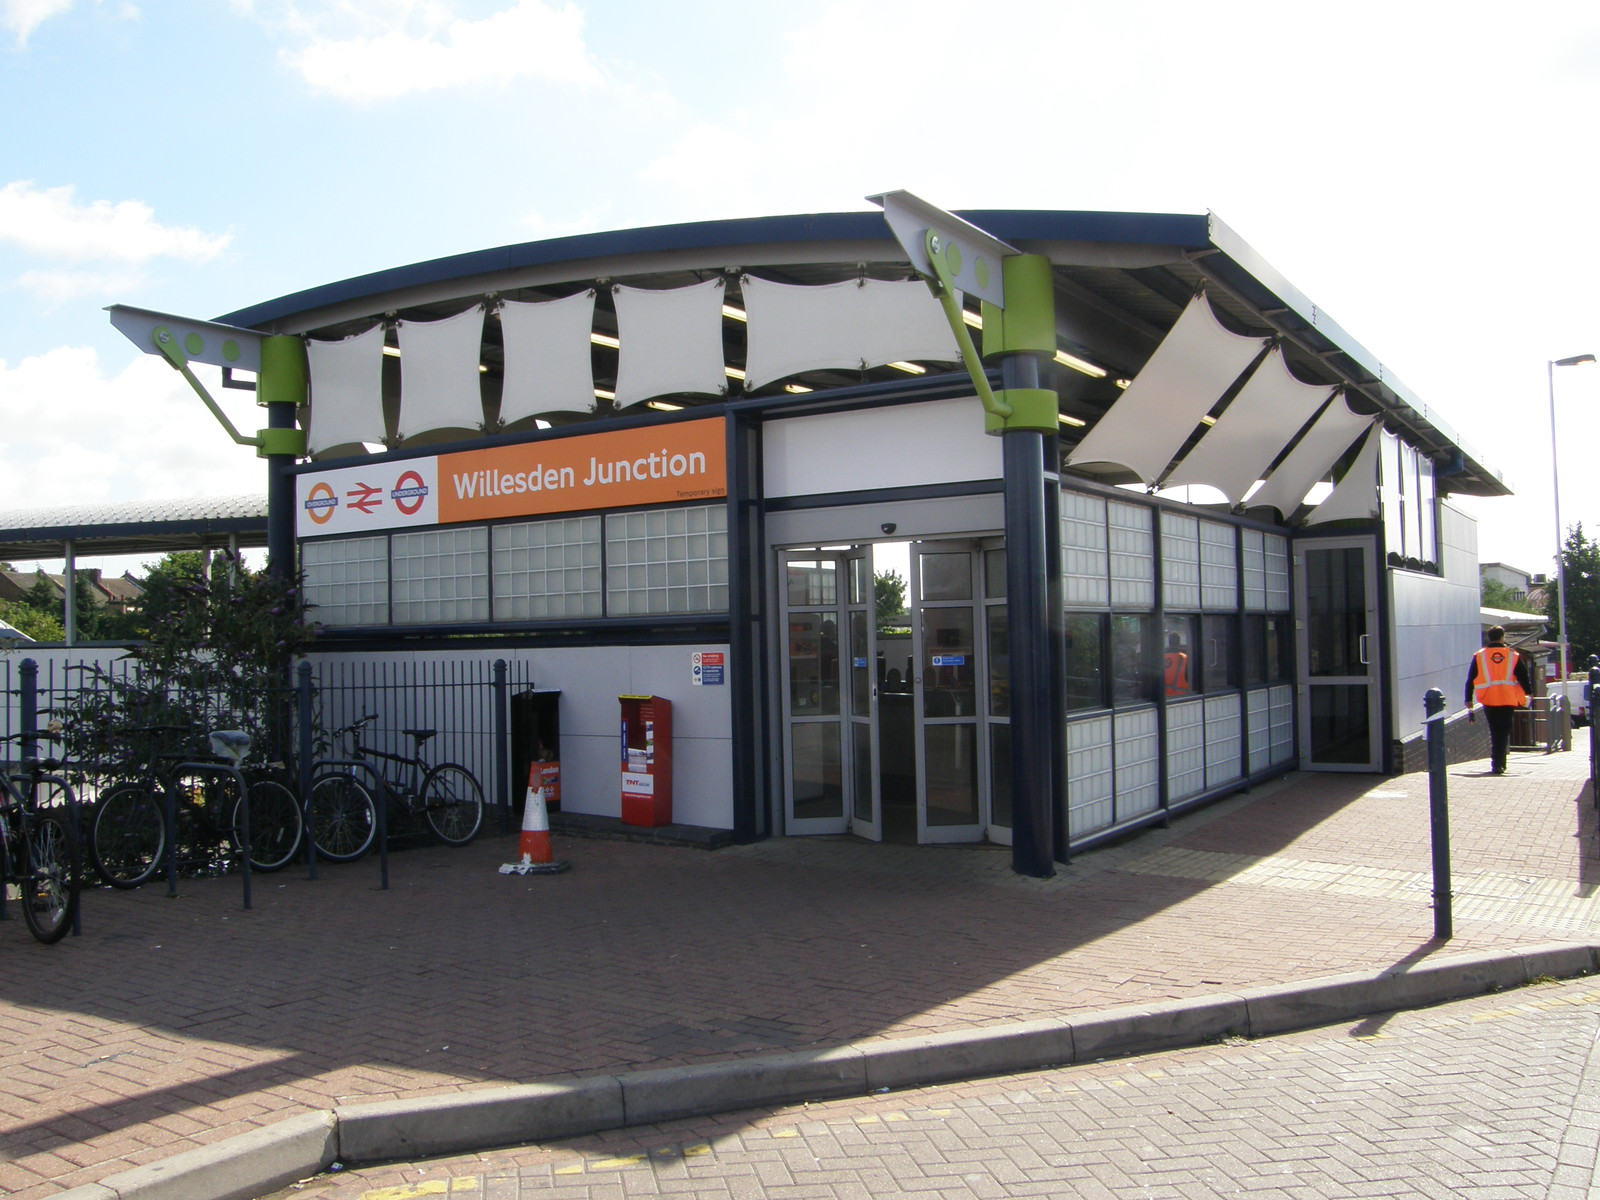 Willesden Junction station